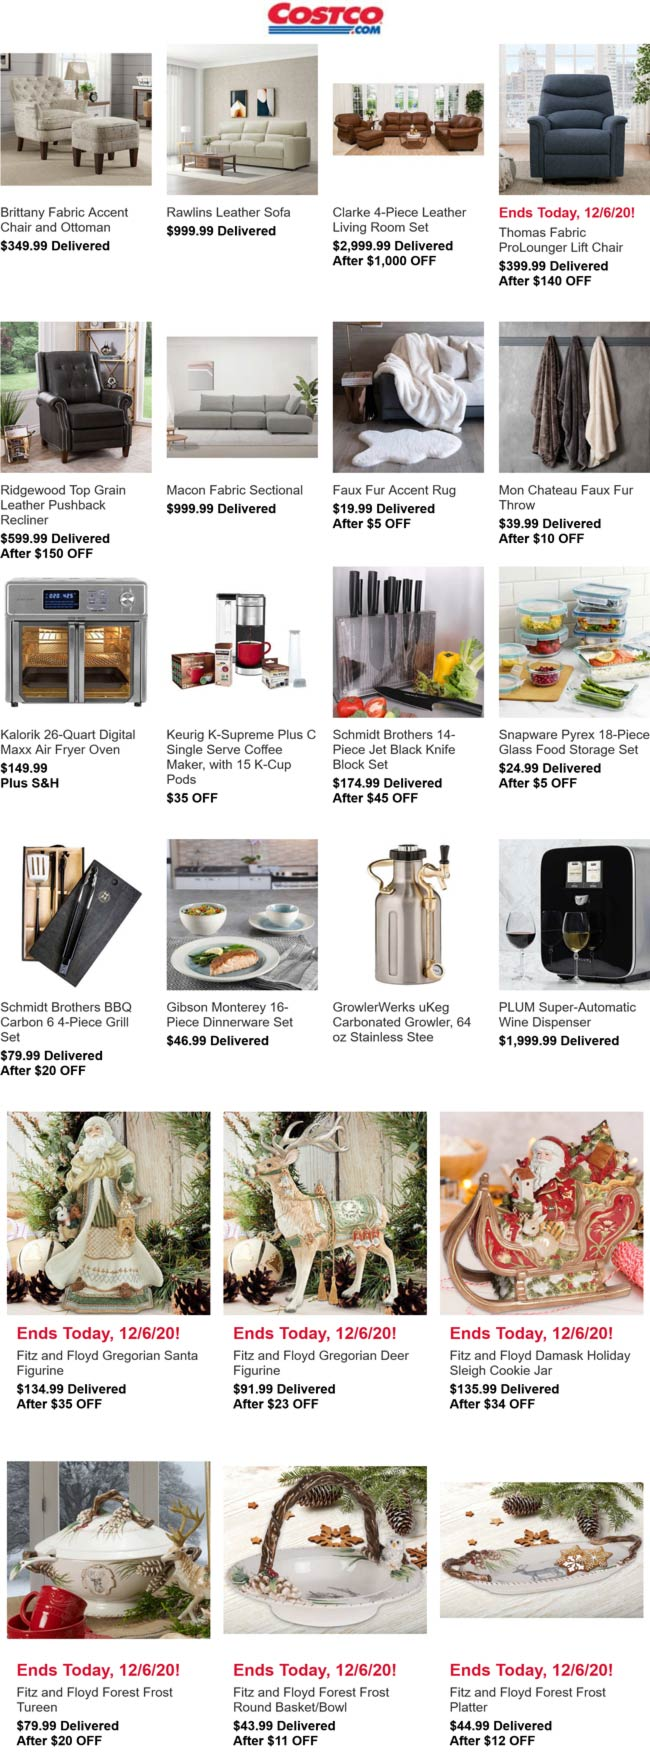 Costco stores Coupon  Various furniture & appliance deals going on today at Costco #costco